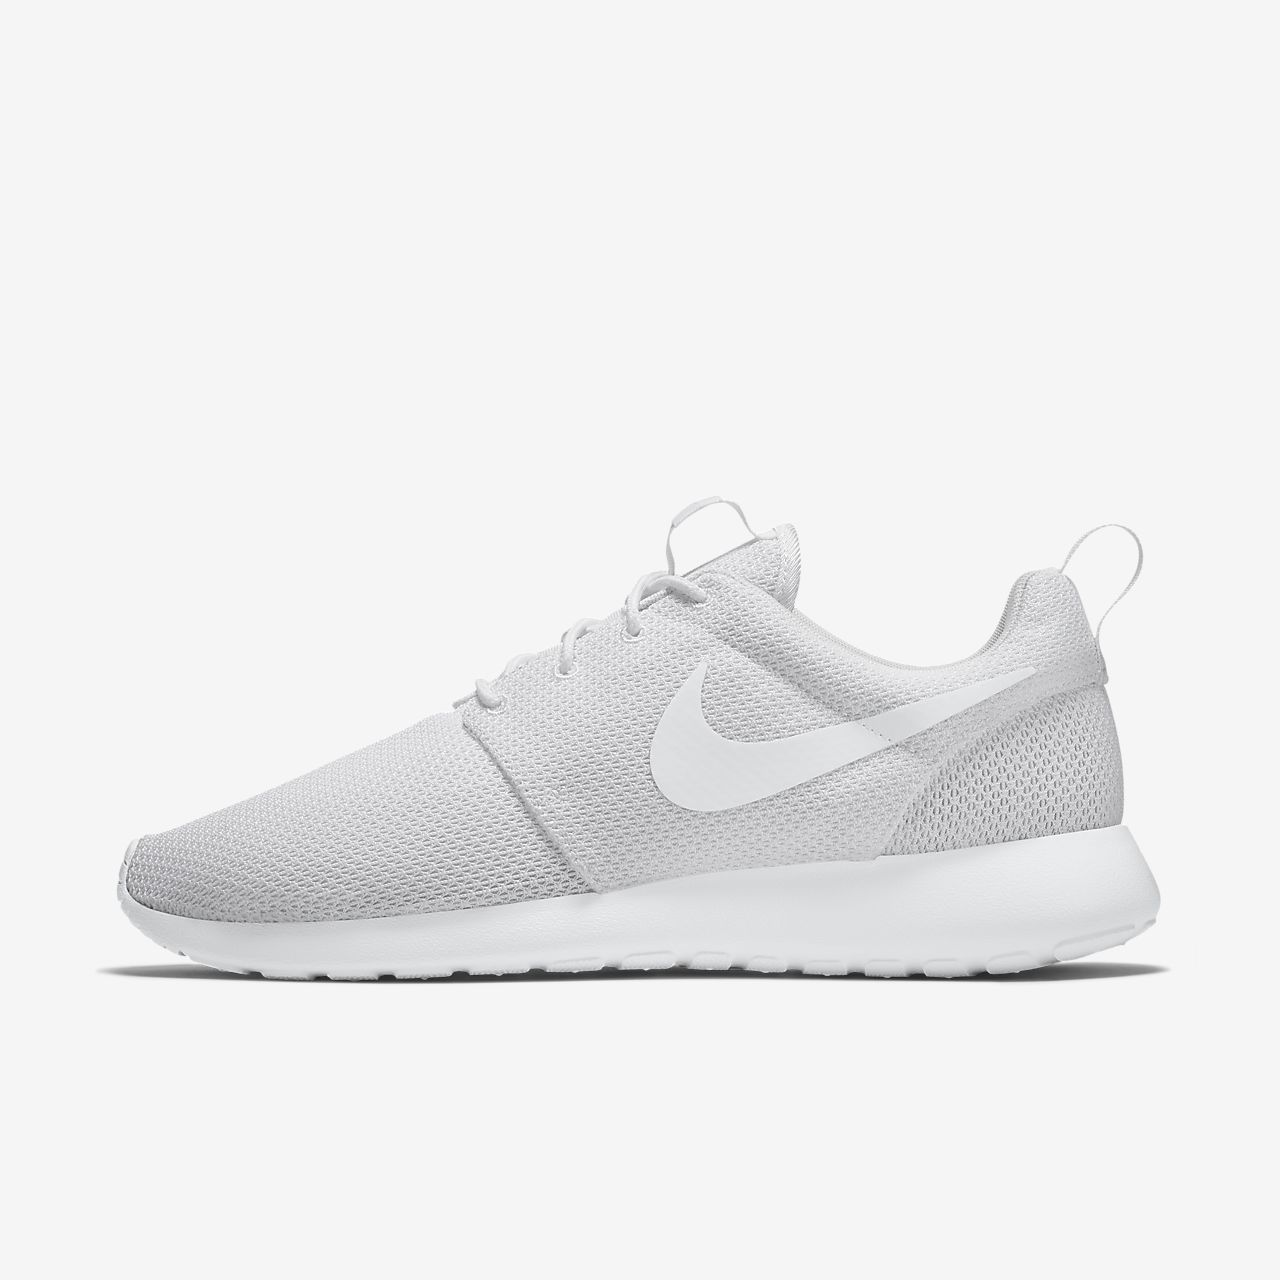 1a84b46363d9 Nike Roshe One Men s Shoe. Nike.com